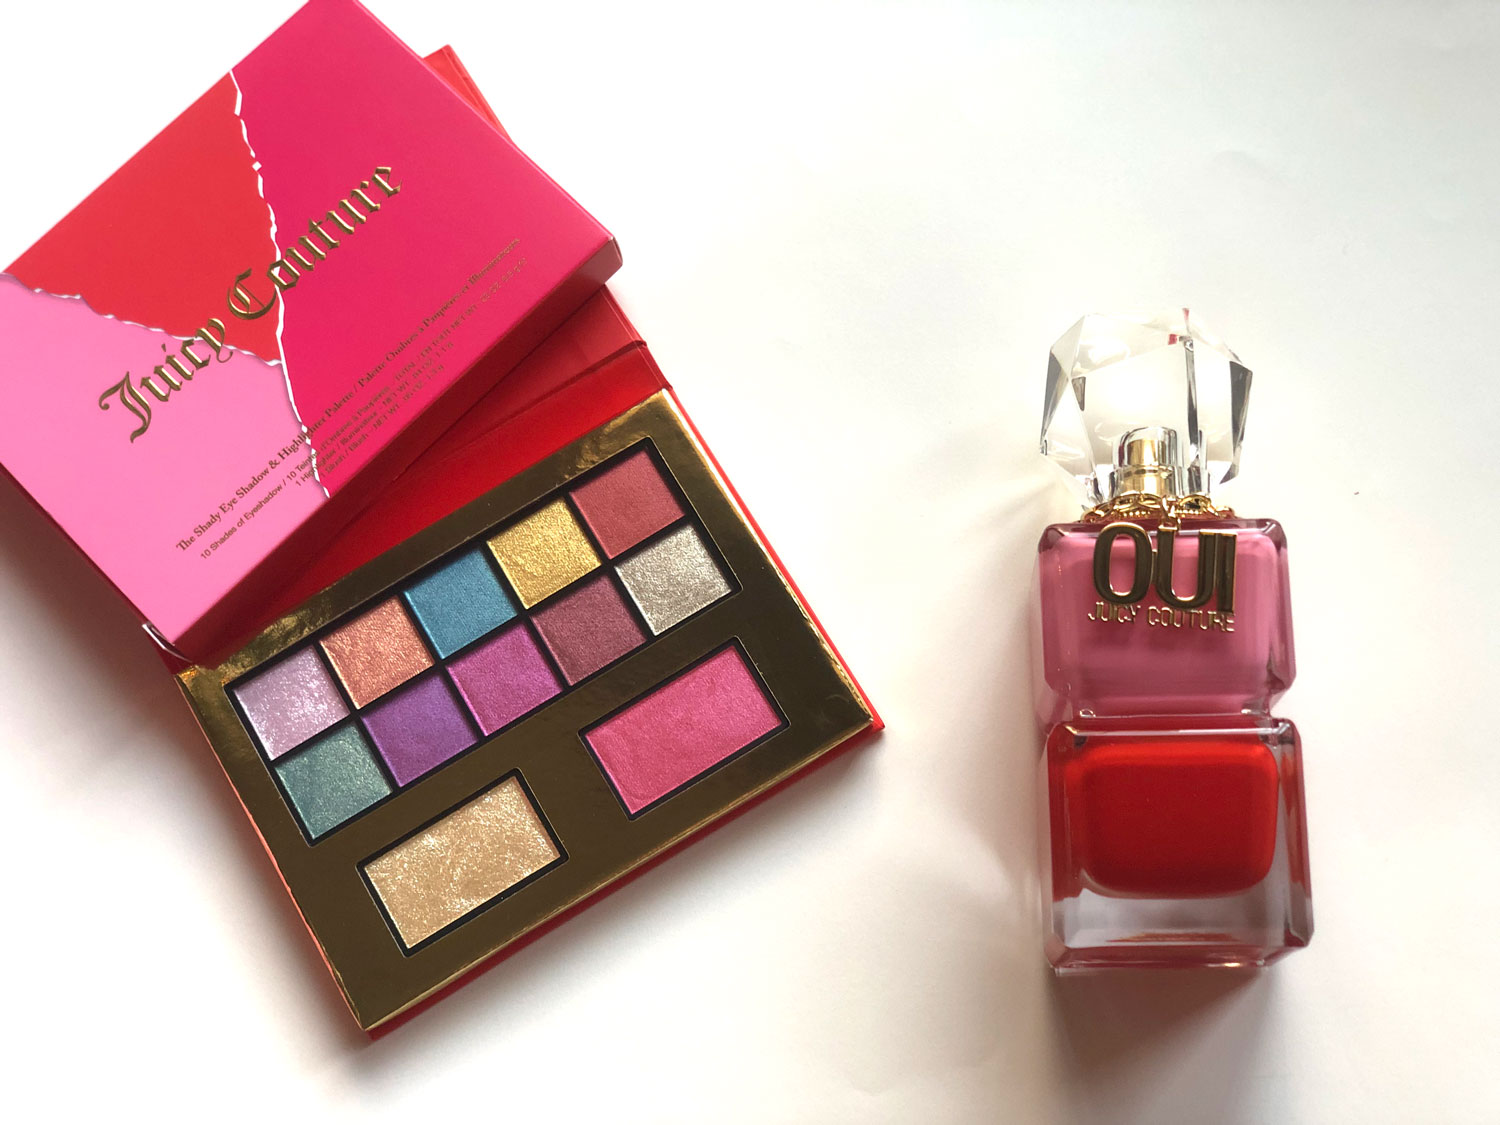 paleta y fragancia de Juicy Couture